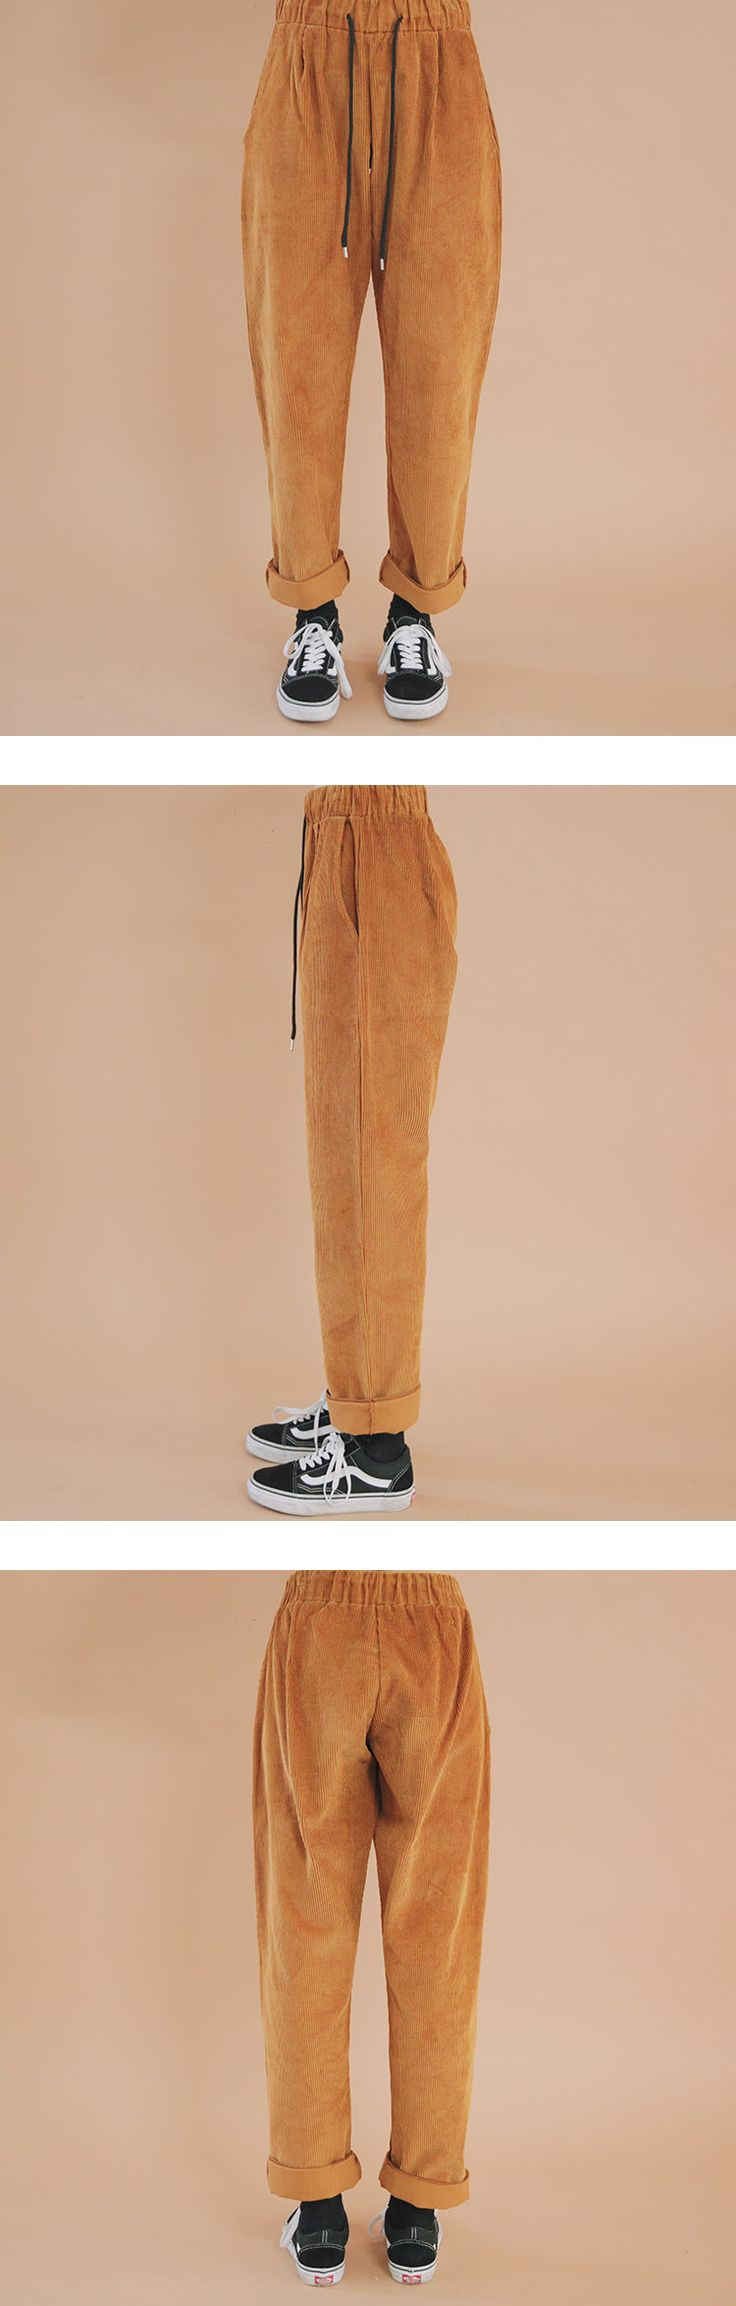 Corrugated Drawstring Pants | STYLENANDA